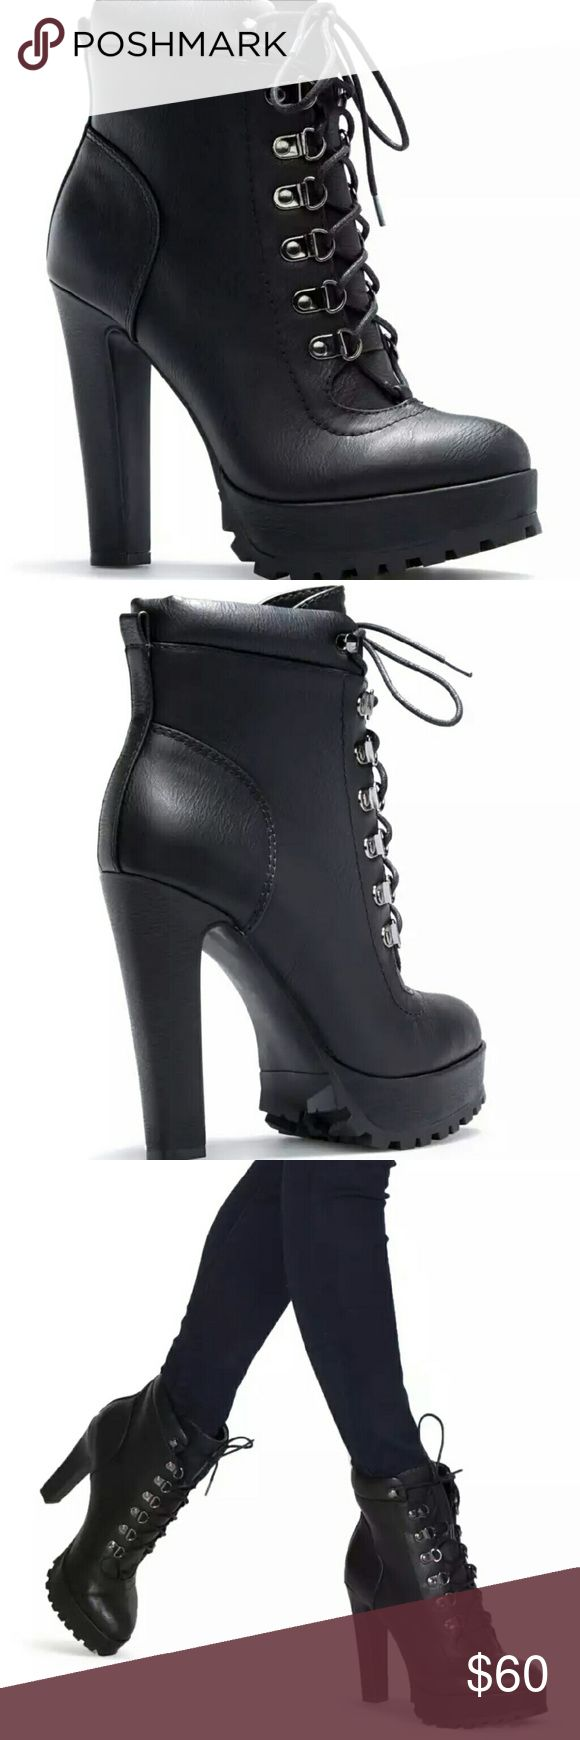 "SHOEDAZZLE MOTO BOOTS NWT Aziza black boot, faux leather, heel height 5"", platform height 1.25"", adjustable front laces. Height with comfort. Size 8.5 Shoe Dazzle Shoes Combat & Moto Boots"